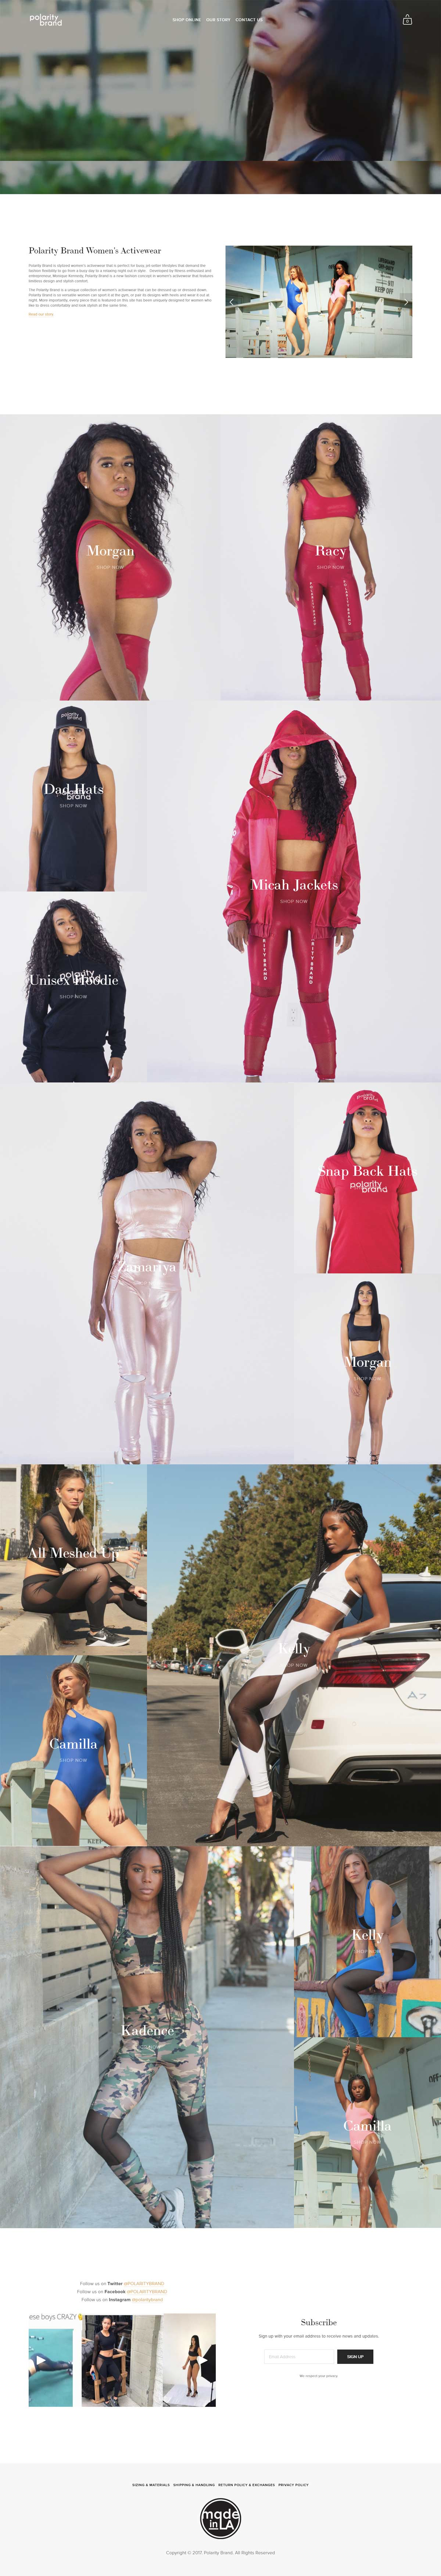 Polarity Brand Women's Activewear